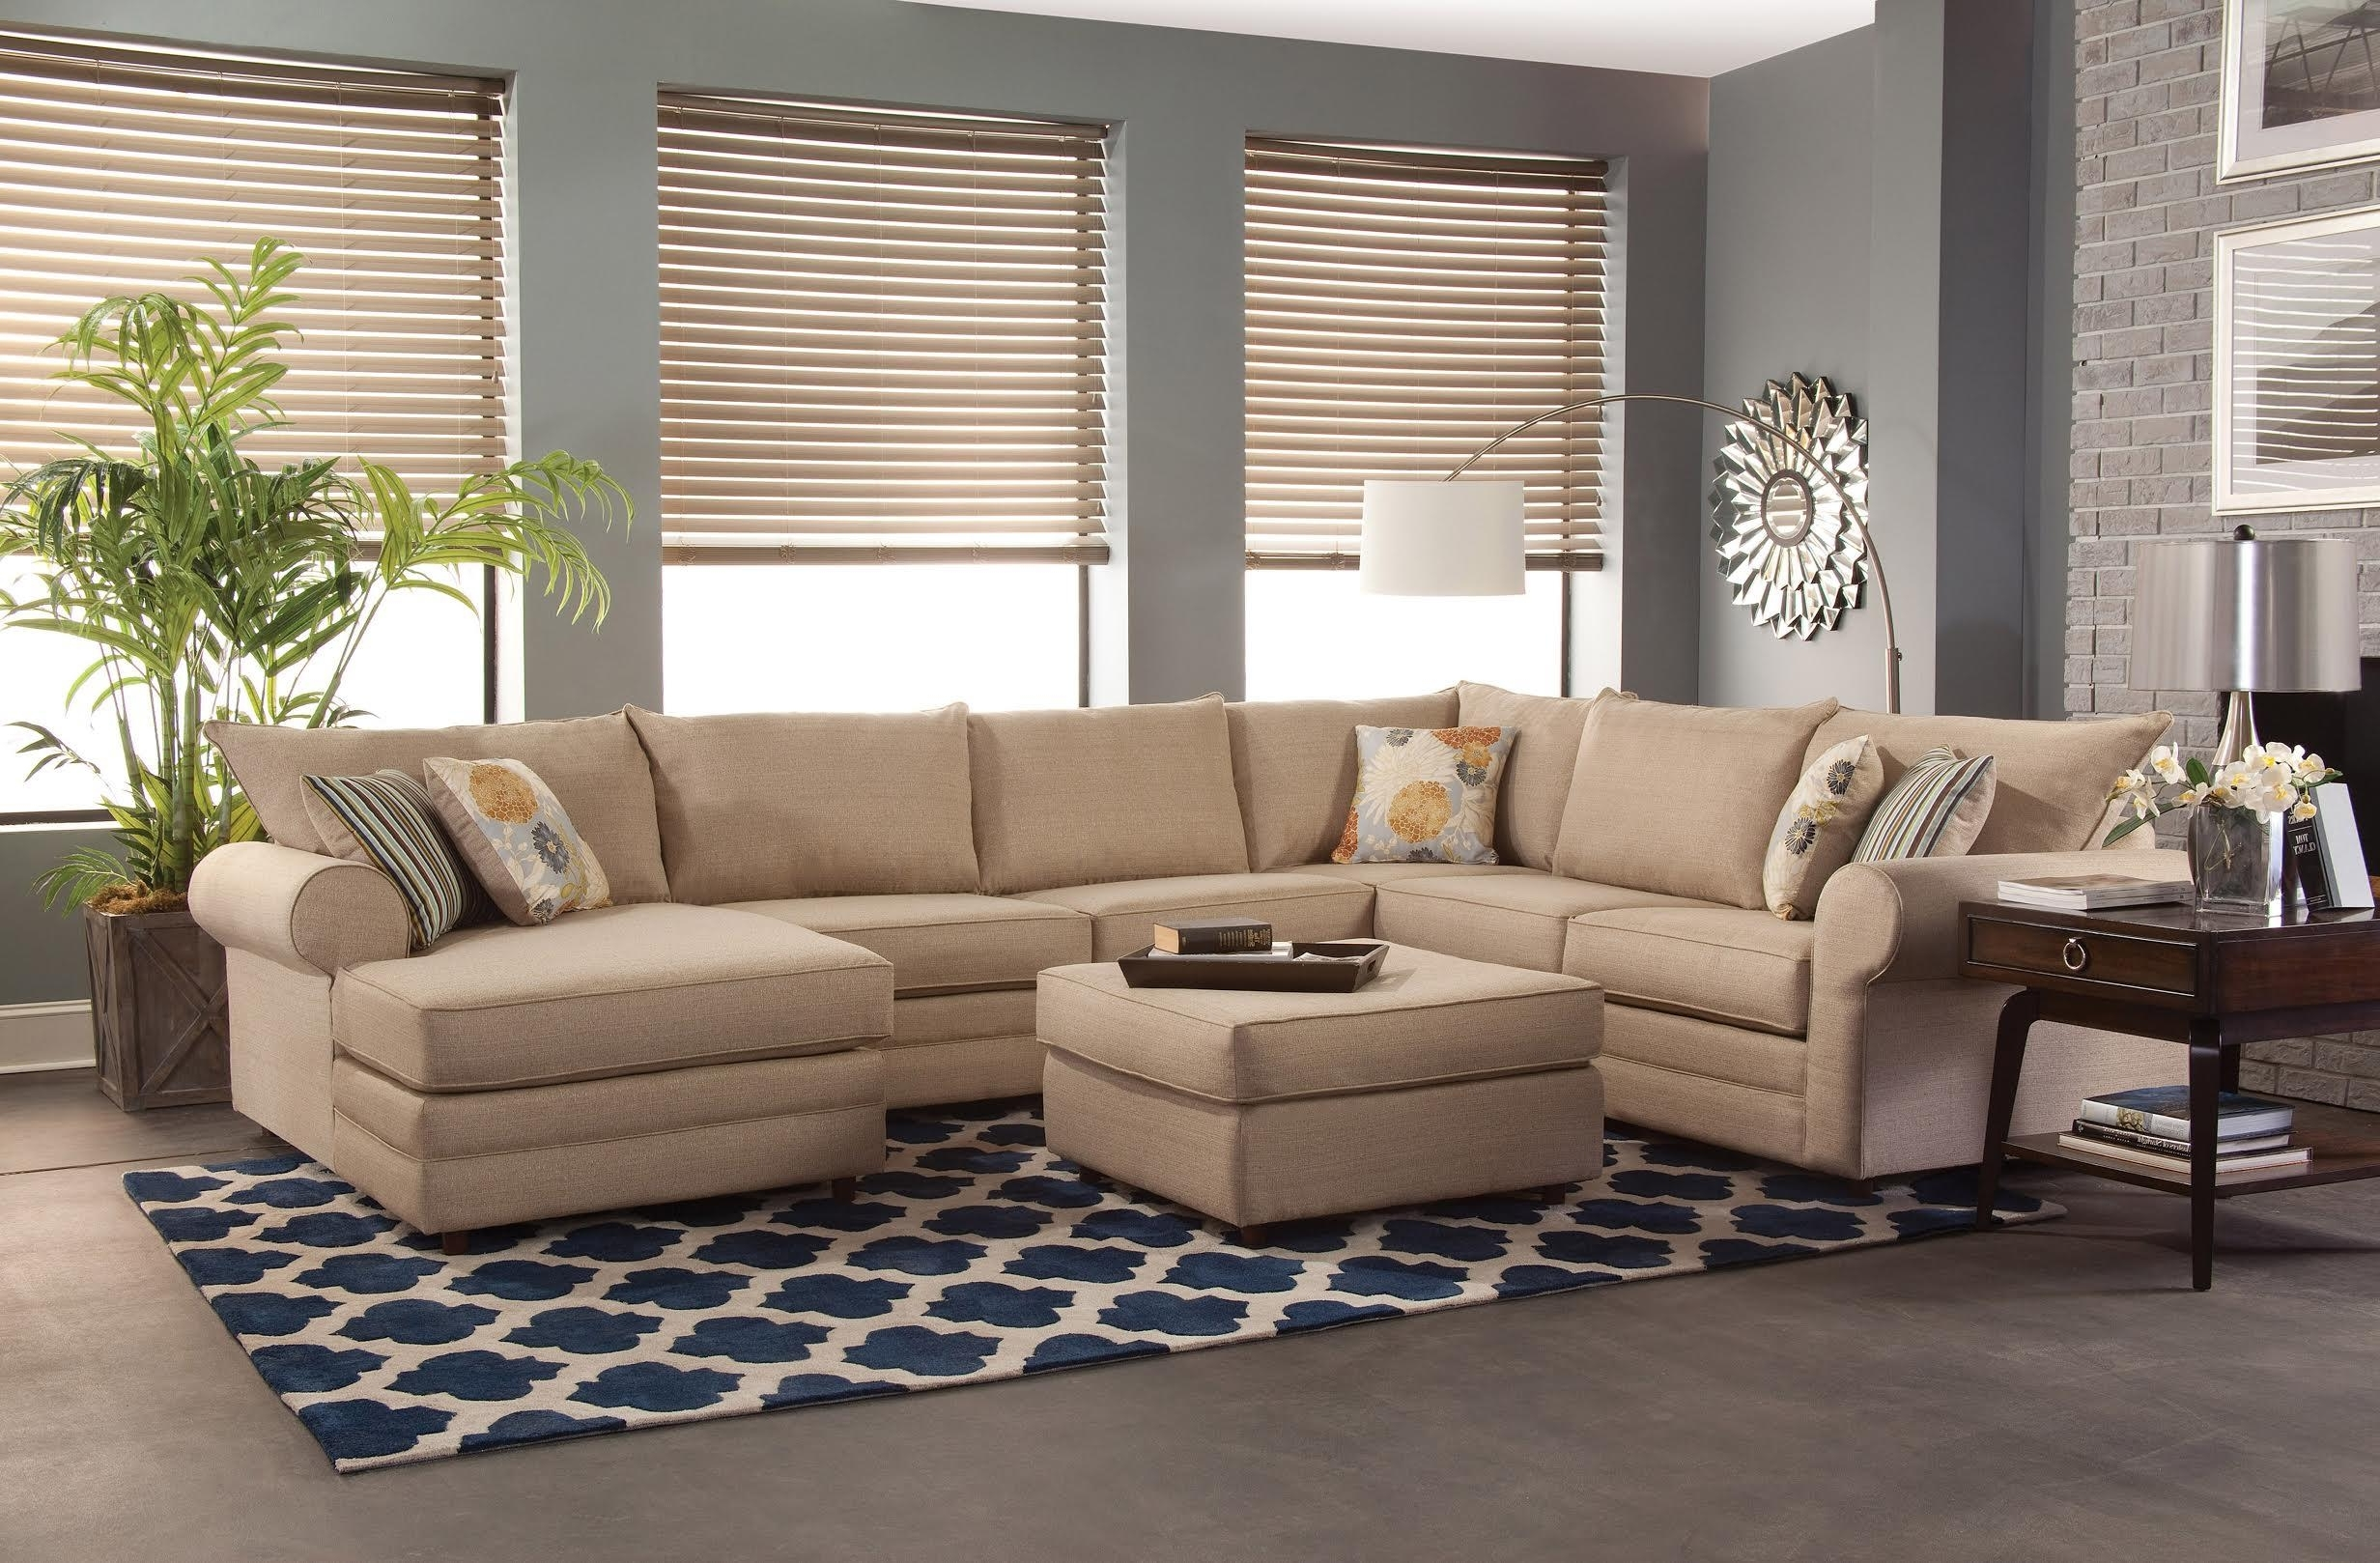 Clubanfi In Cozy Sectional Sofas (View 15 of 20)